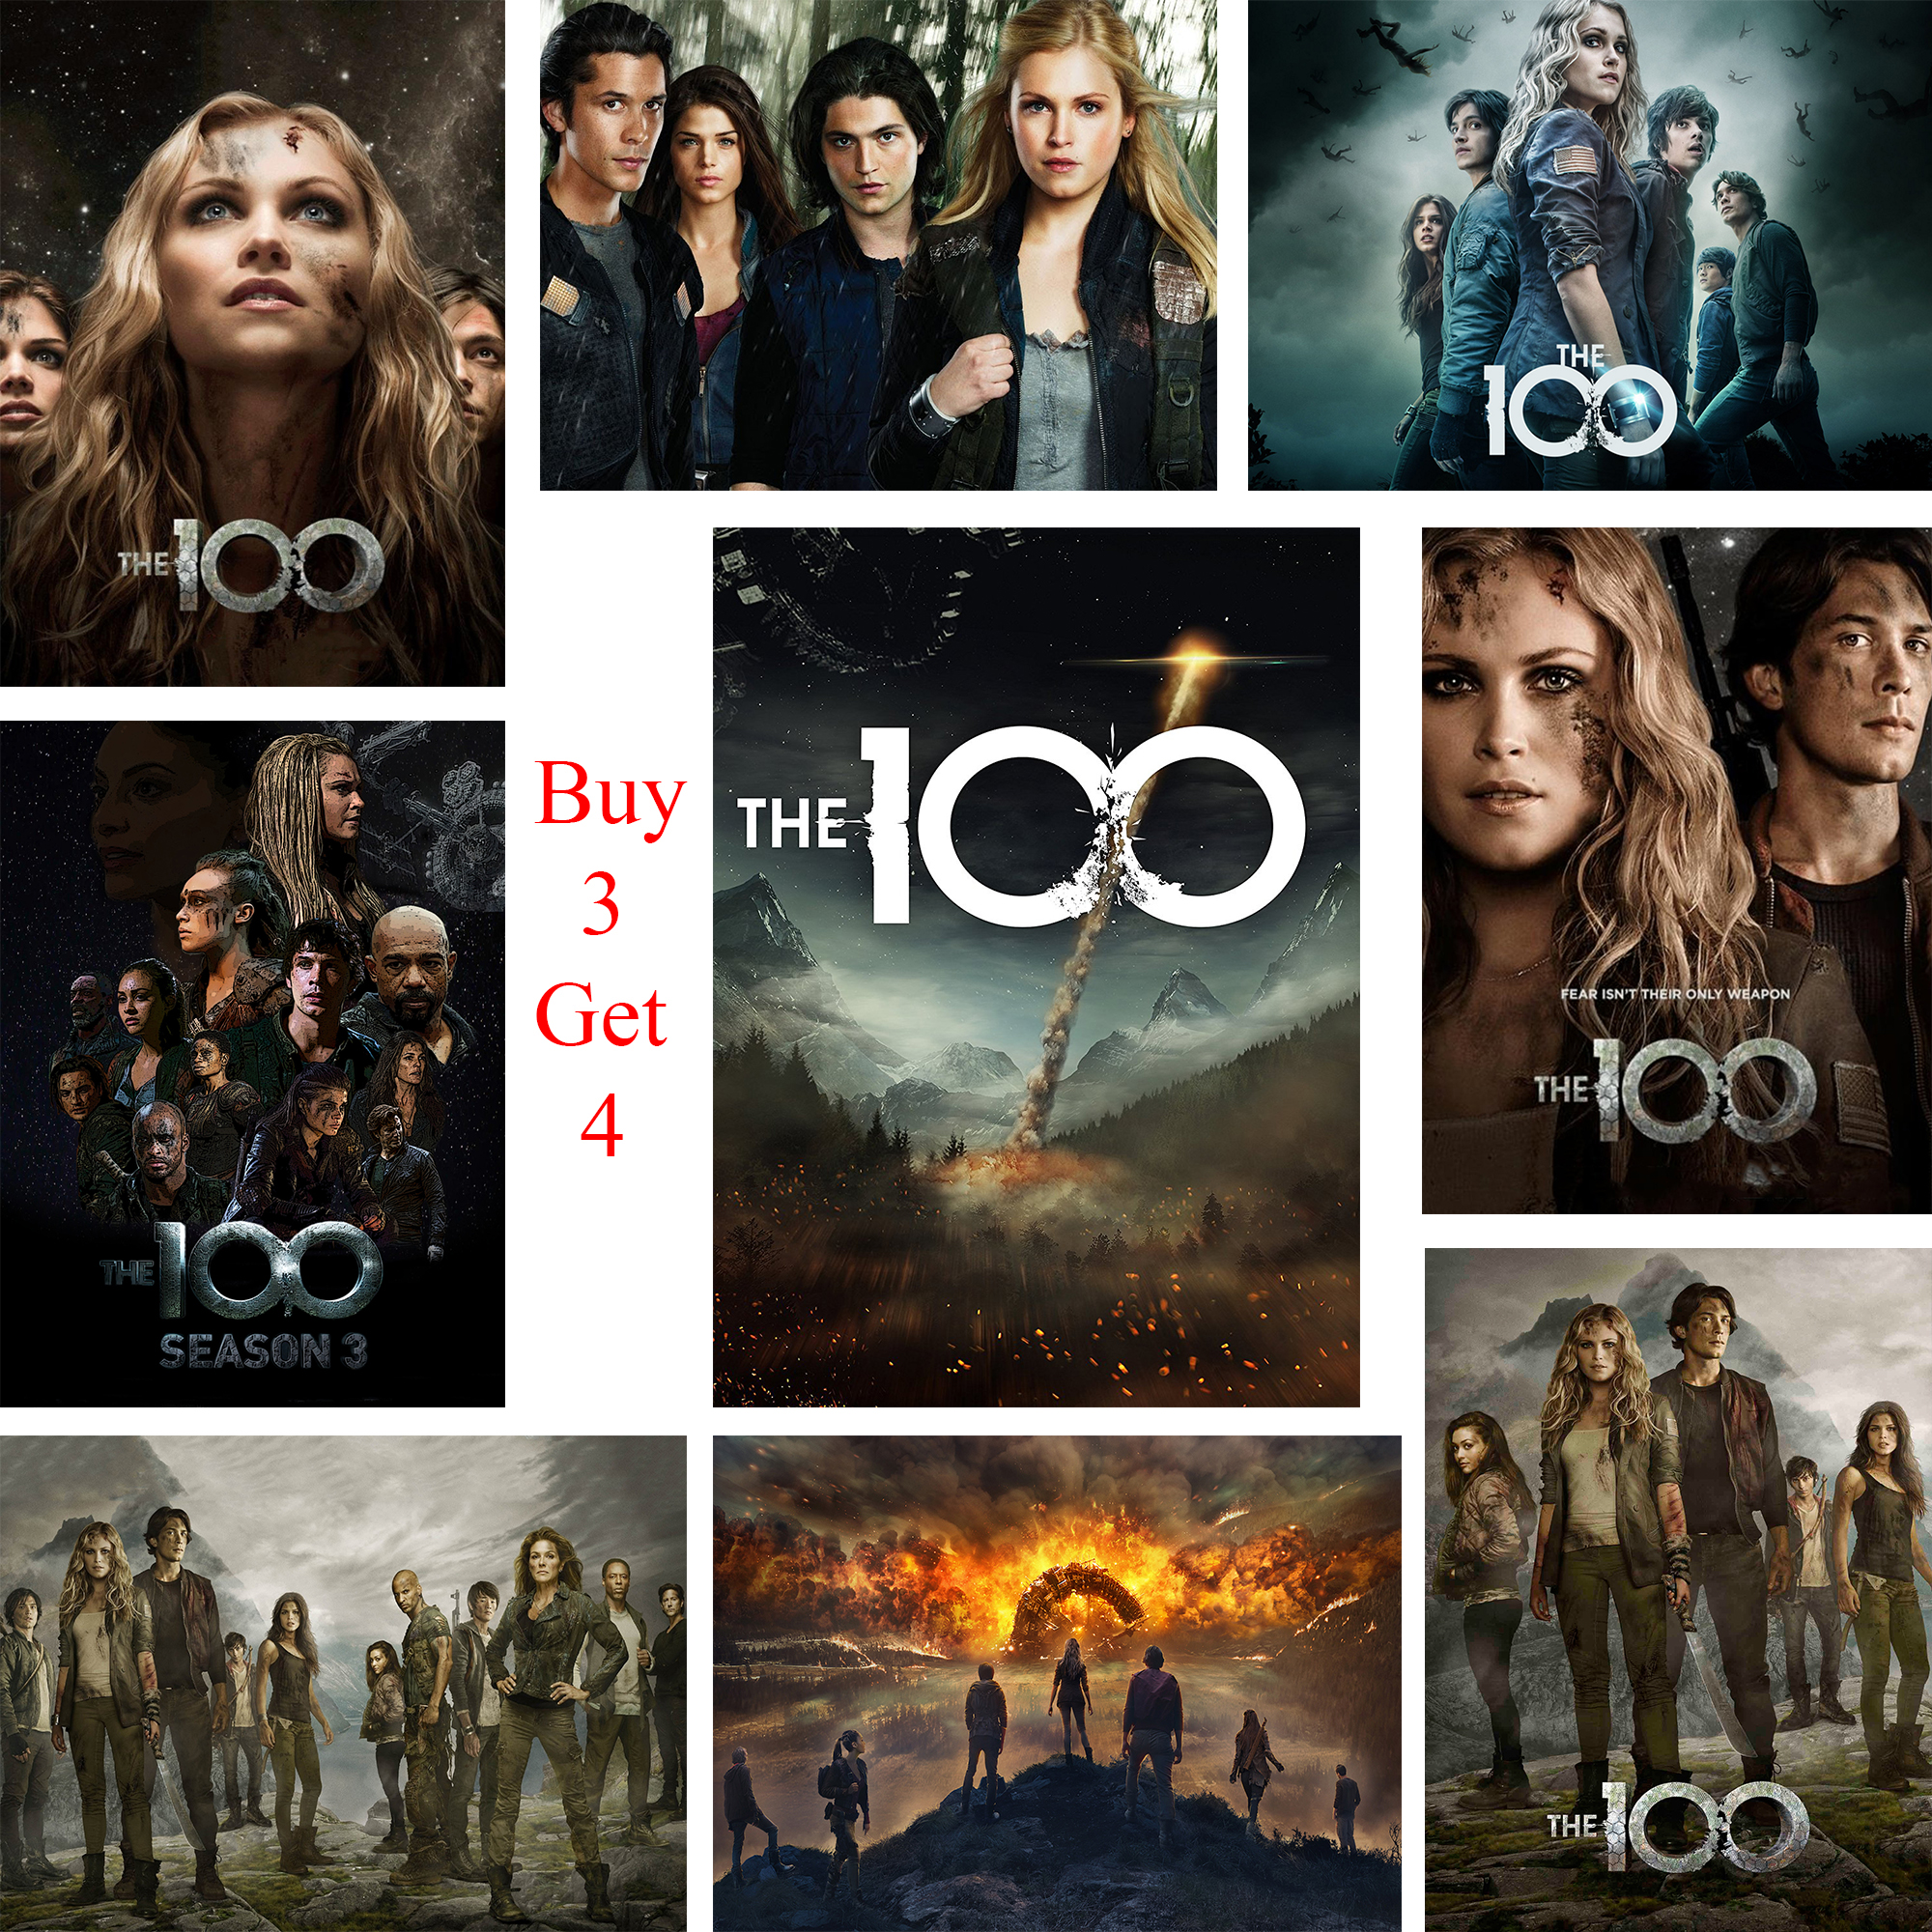 The 100 Posters Movie Wall Stickers White Coated Paper Prints Clear Image Home Decoration Livingroom Bedroom Bar Home Art Brand